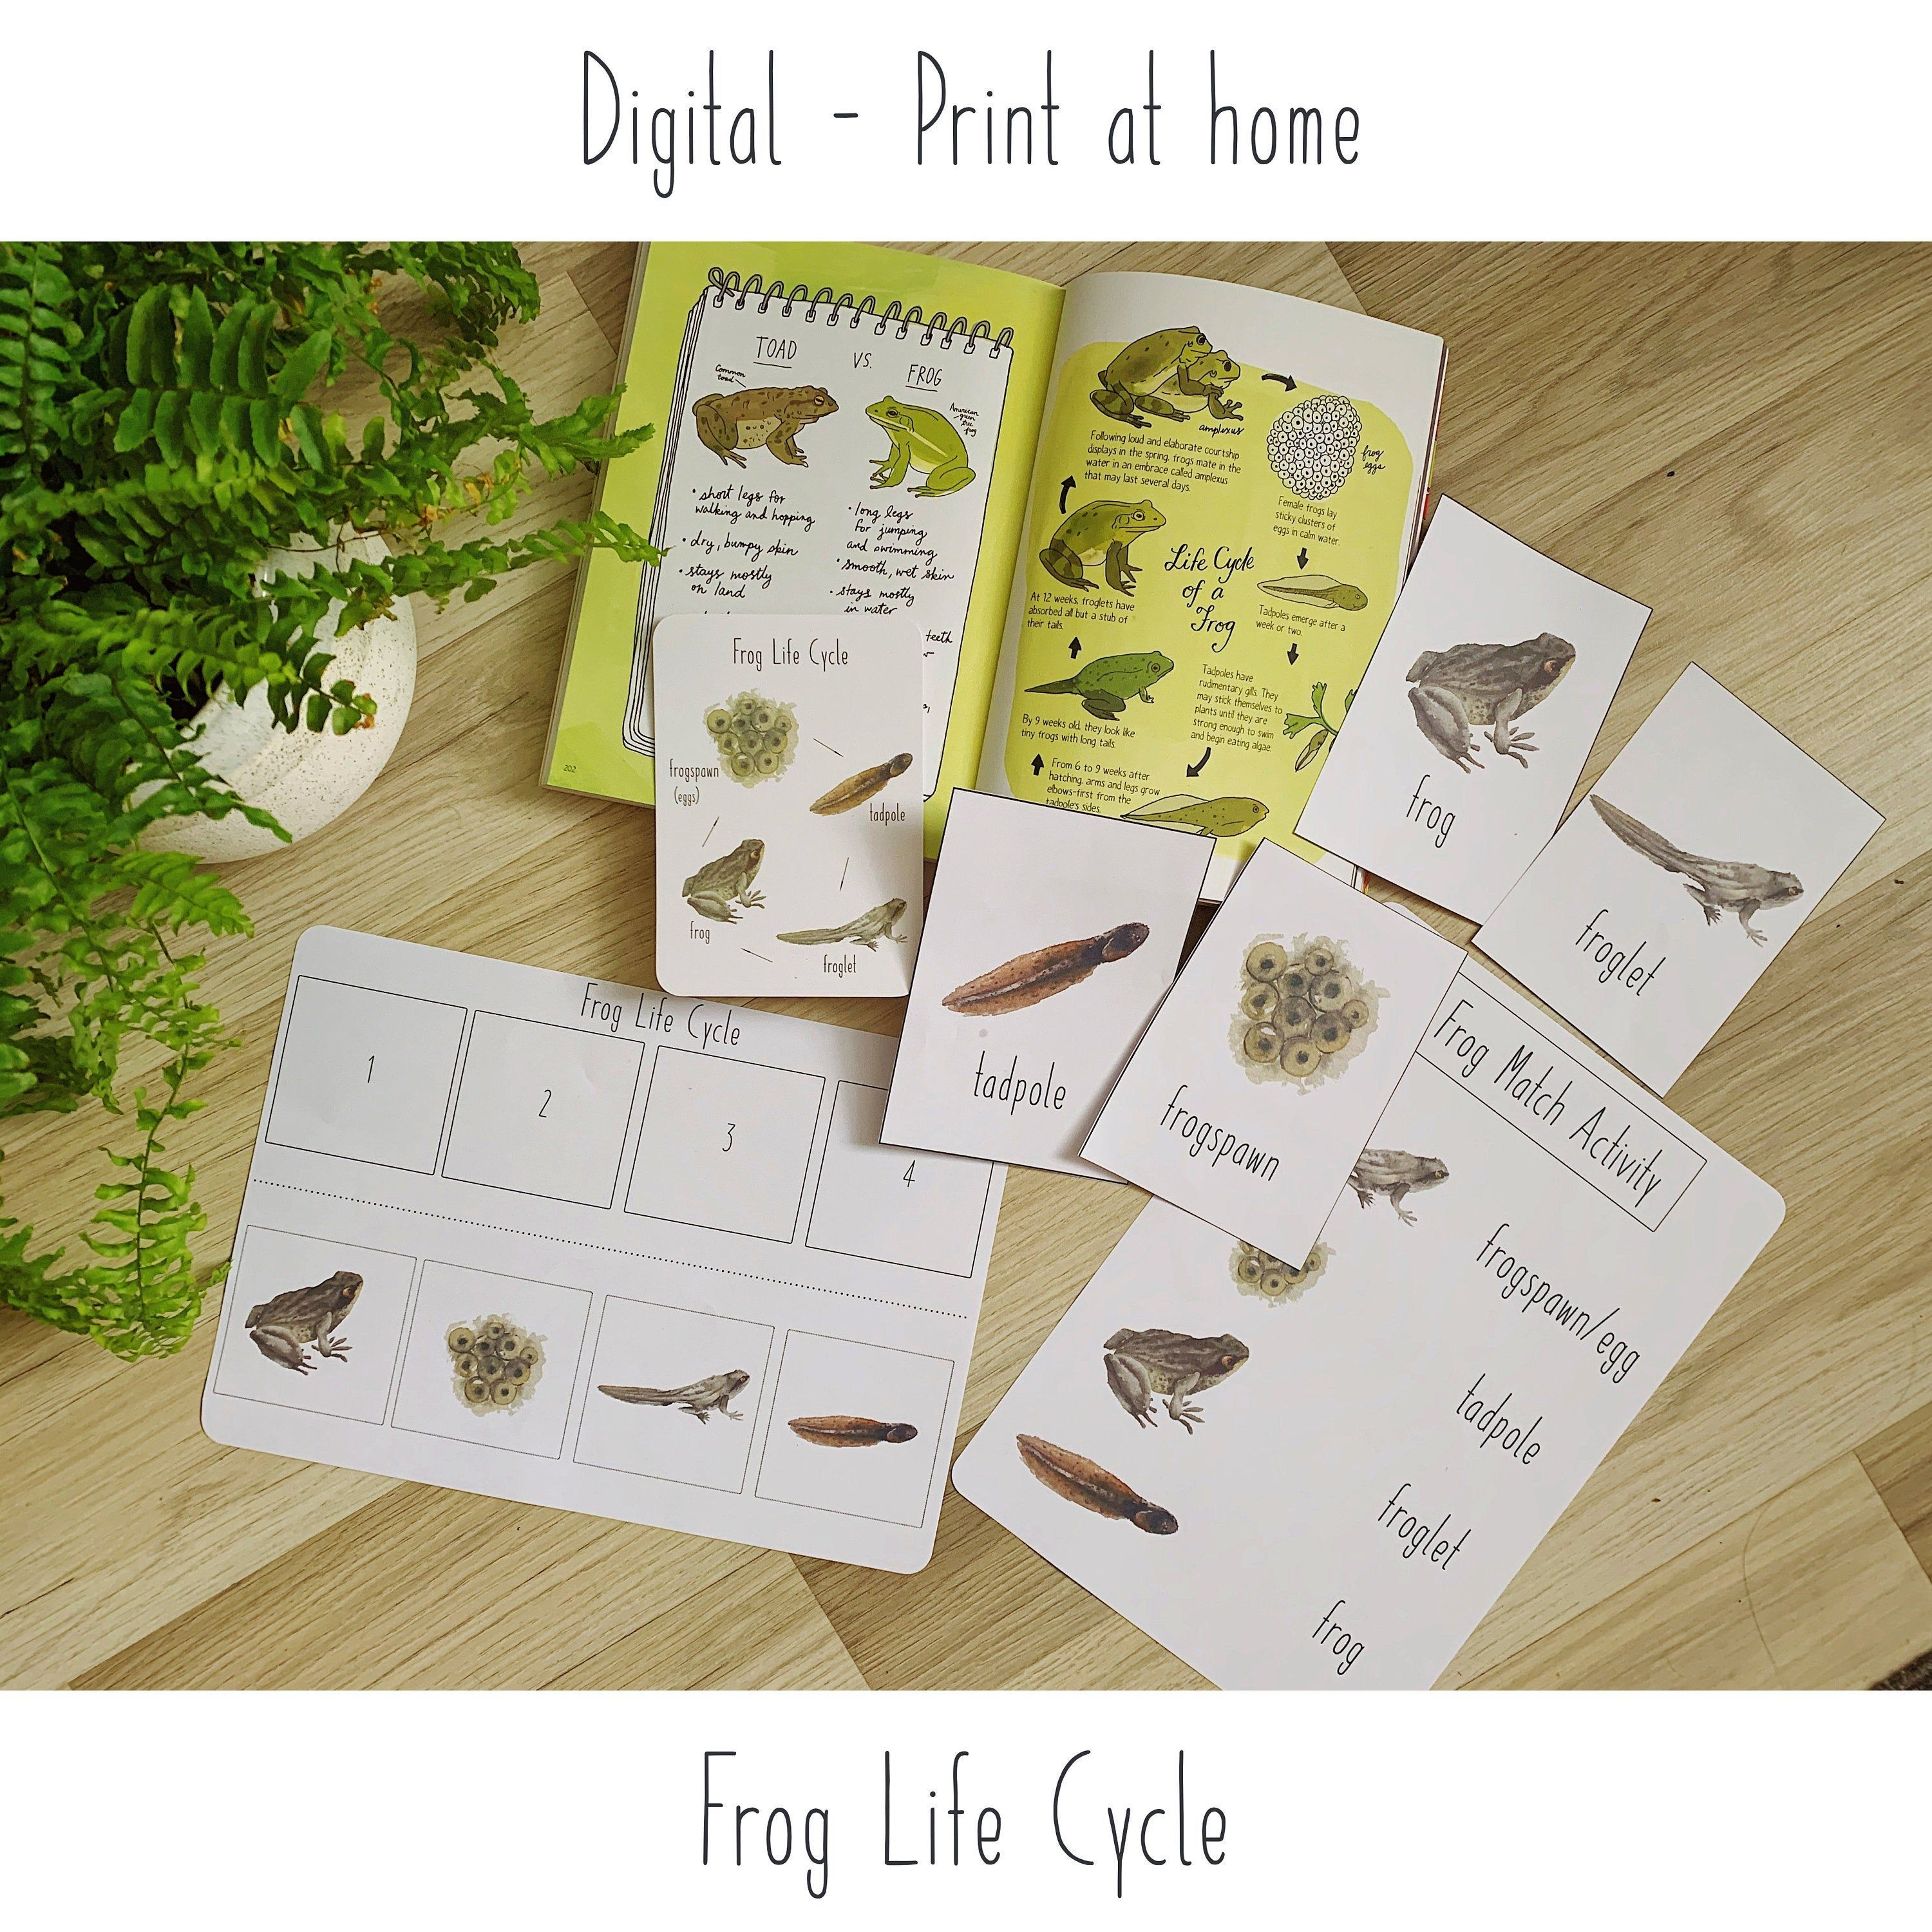 Frog Life Cycle Nature Study Montessori Materials Home